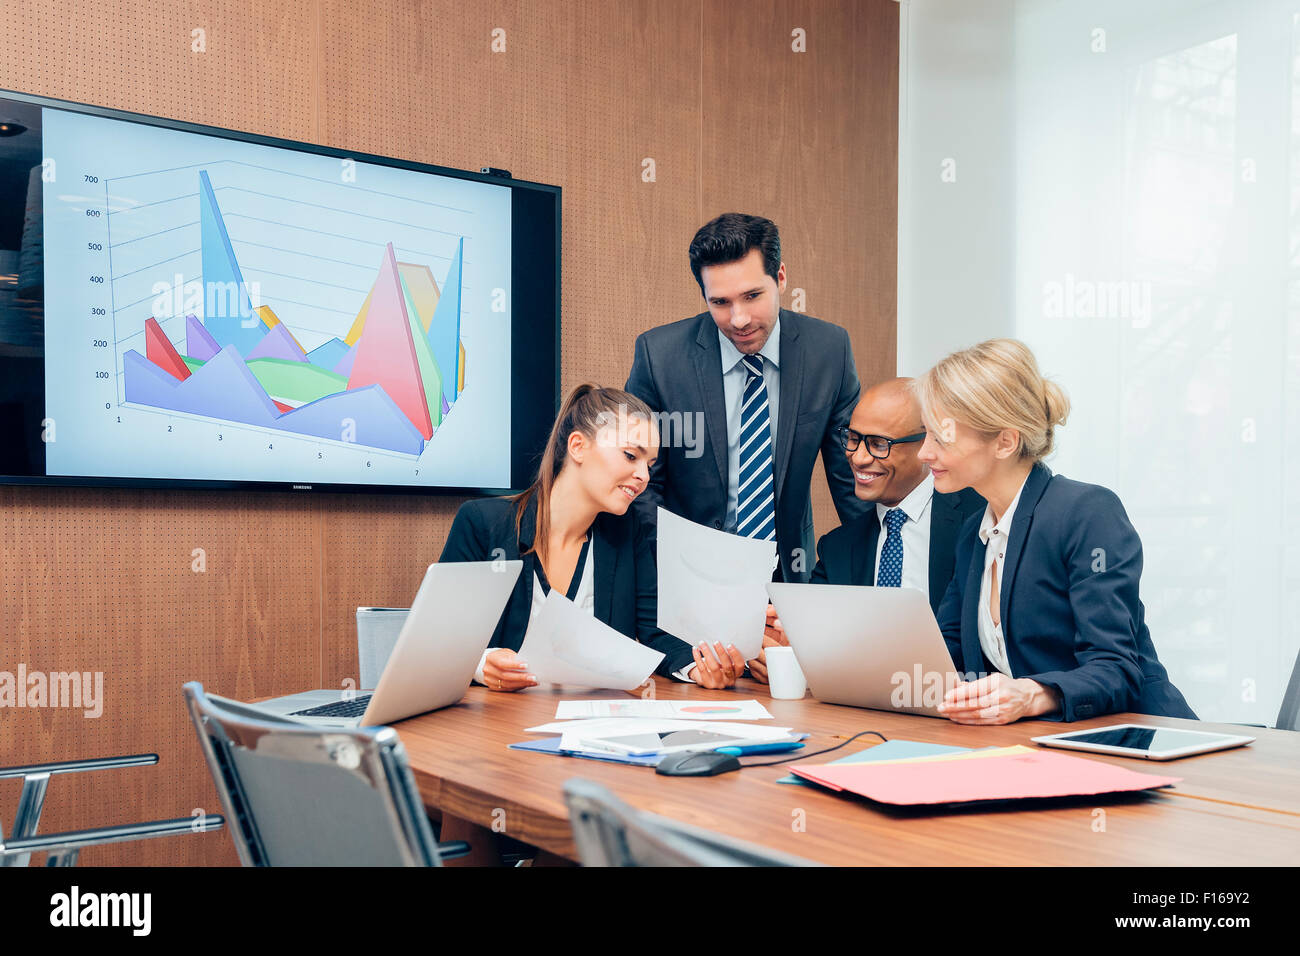 Business people meeting - Stock Image